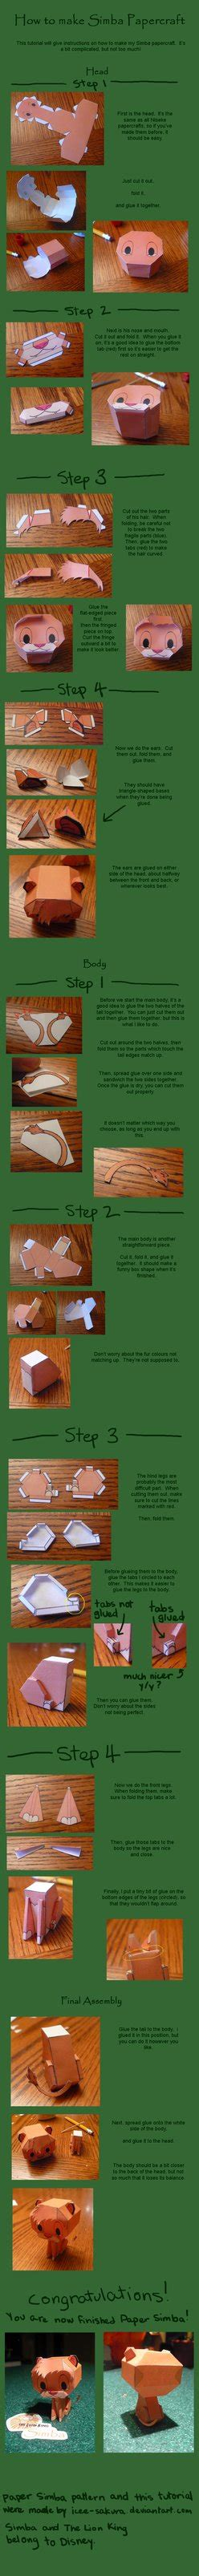 Papercraft Tutorial - simba papercraft tutorial by arcelian on deviantart